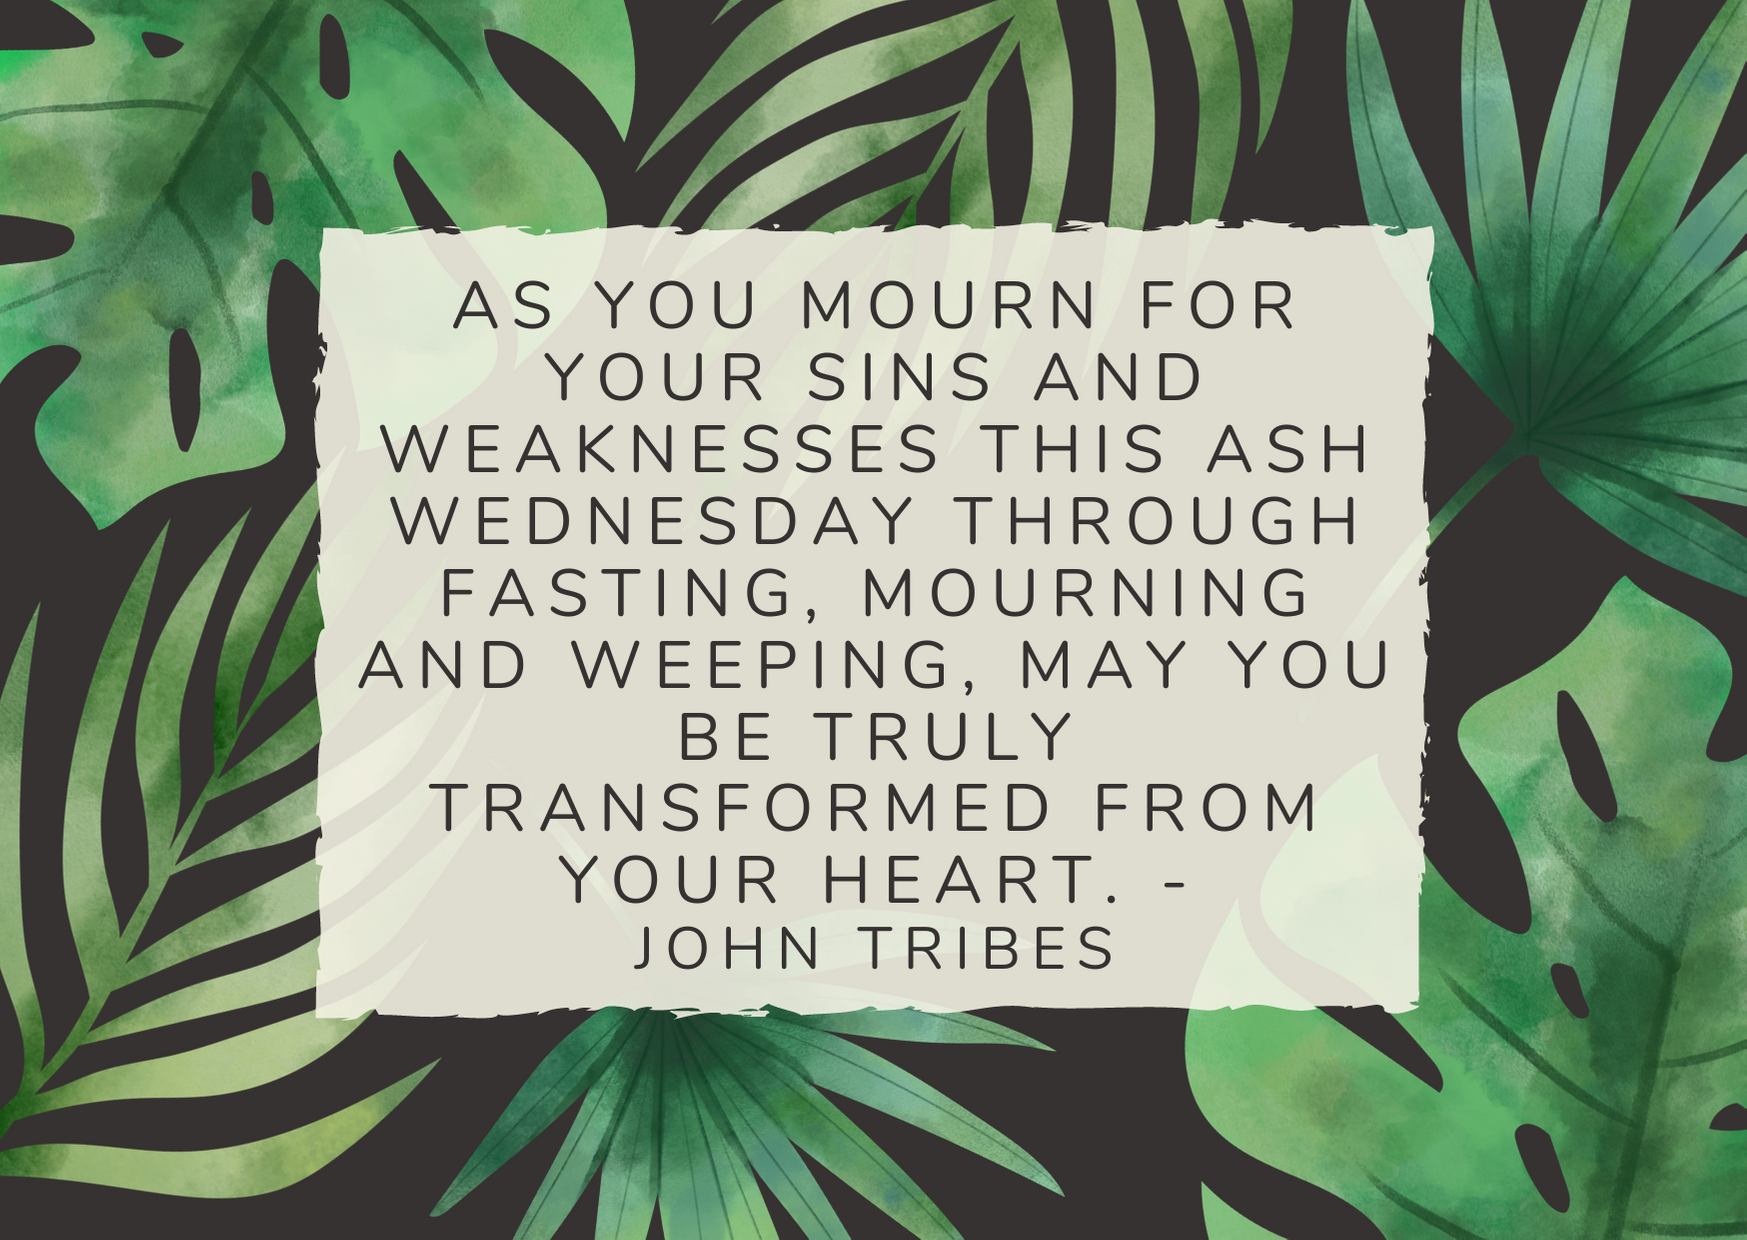 As you mourn for your sins and weaknesses this Ash Wednesday through fasting, mourning and weeping, may you be truly transformed from your heart. - John Tribes